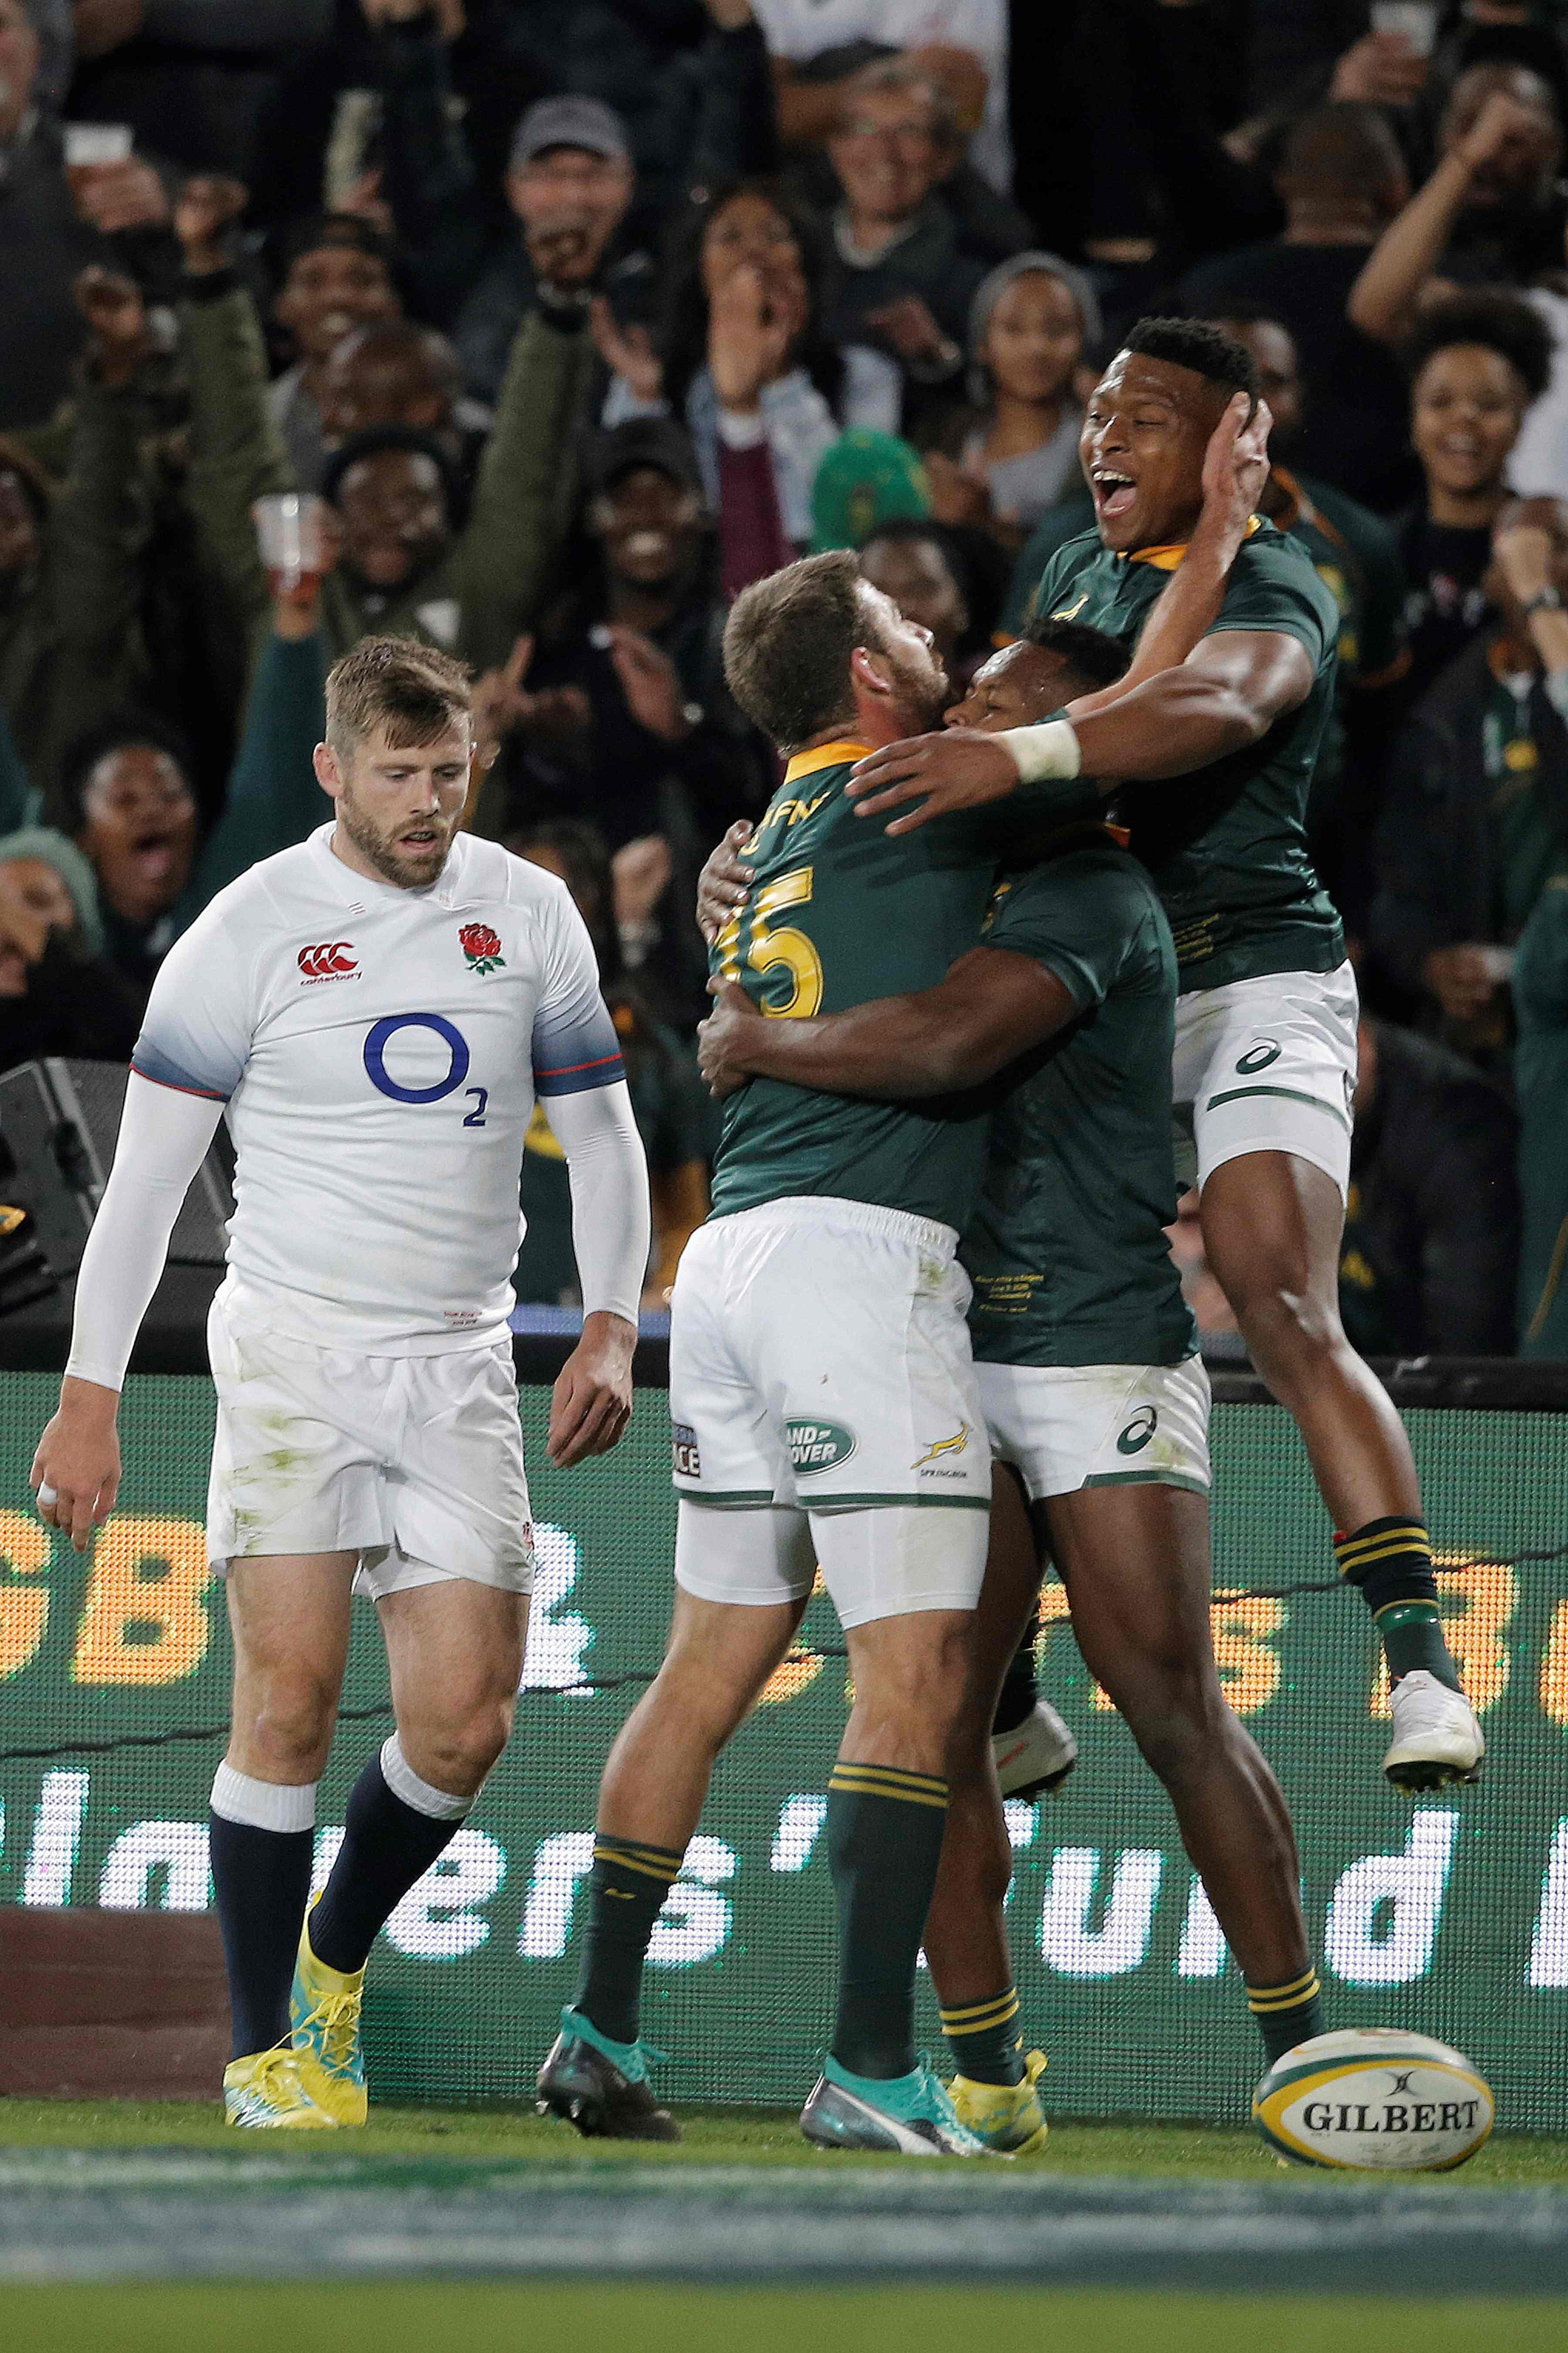 Nkosi celebrates with his team-mates after scoring a try for his country